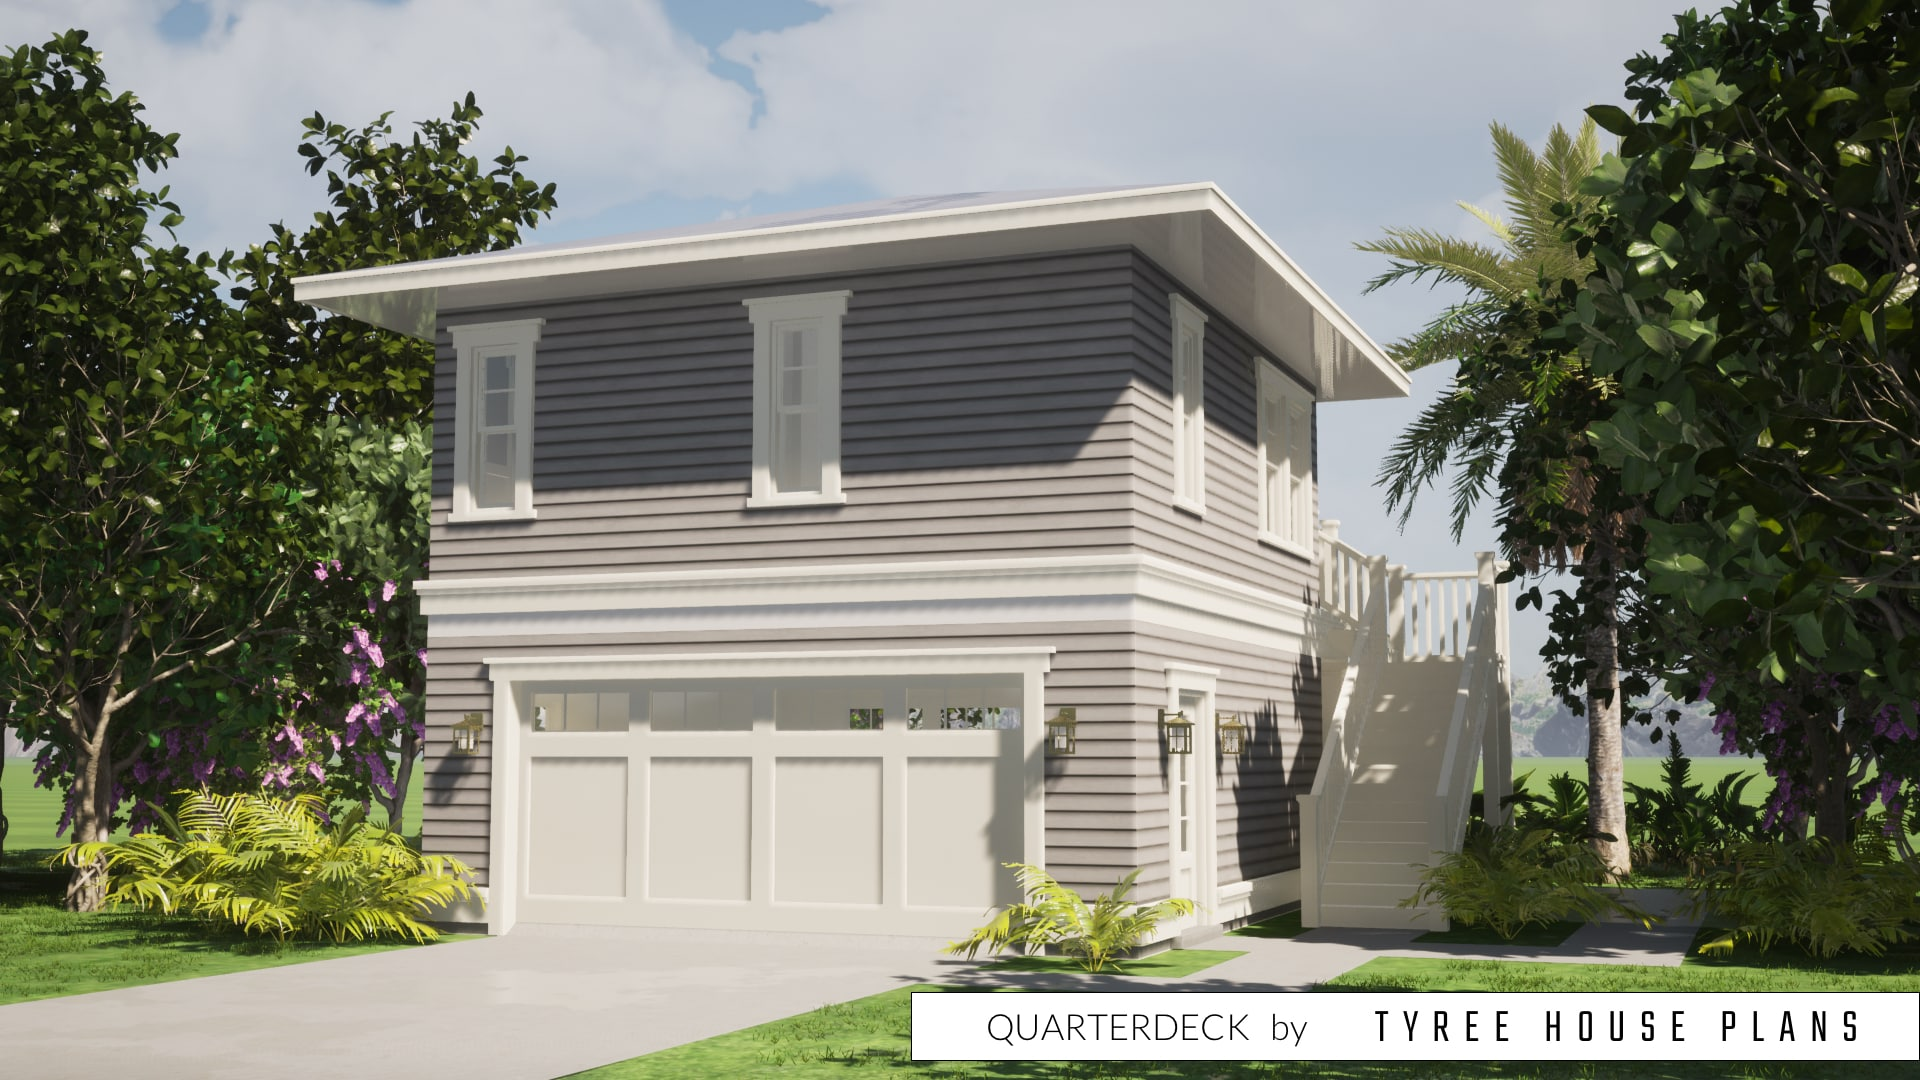 Quarterdeck House Plan by Tyree House Plans